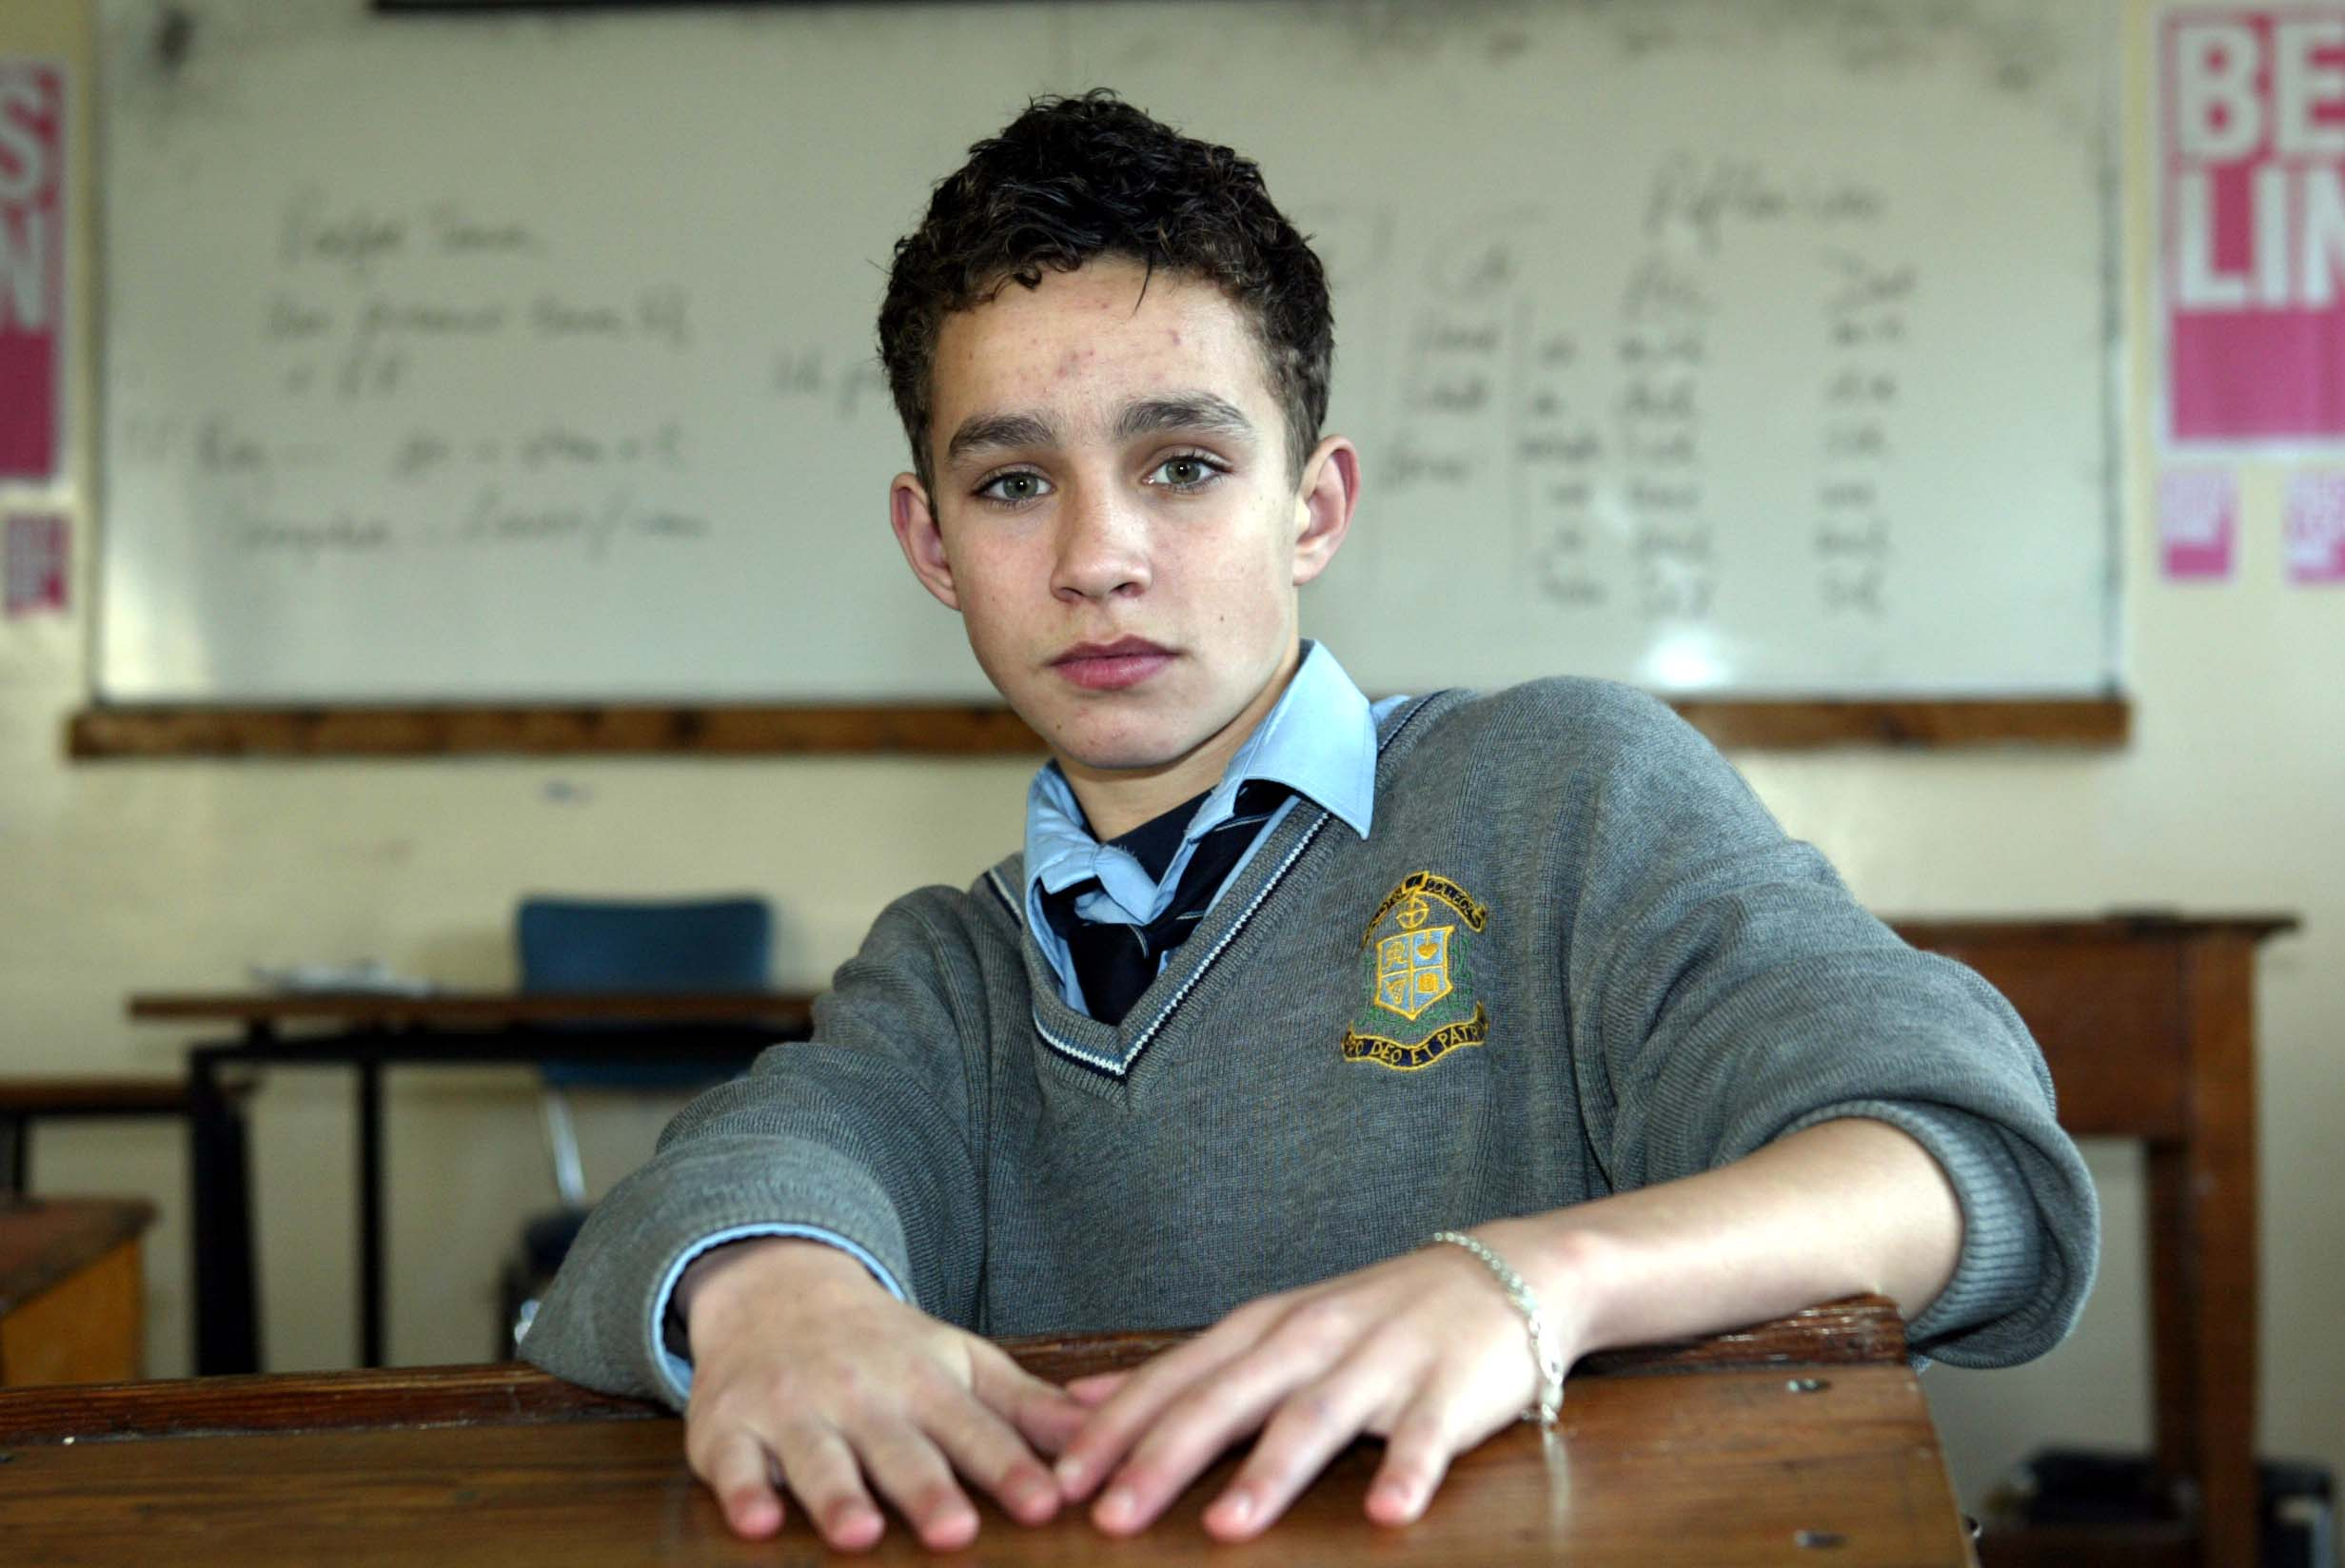 Moment in time: Schoolboy Robert Sheehan wins his first ...